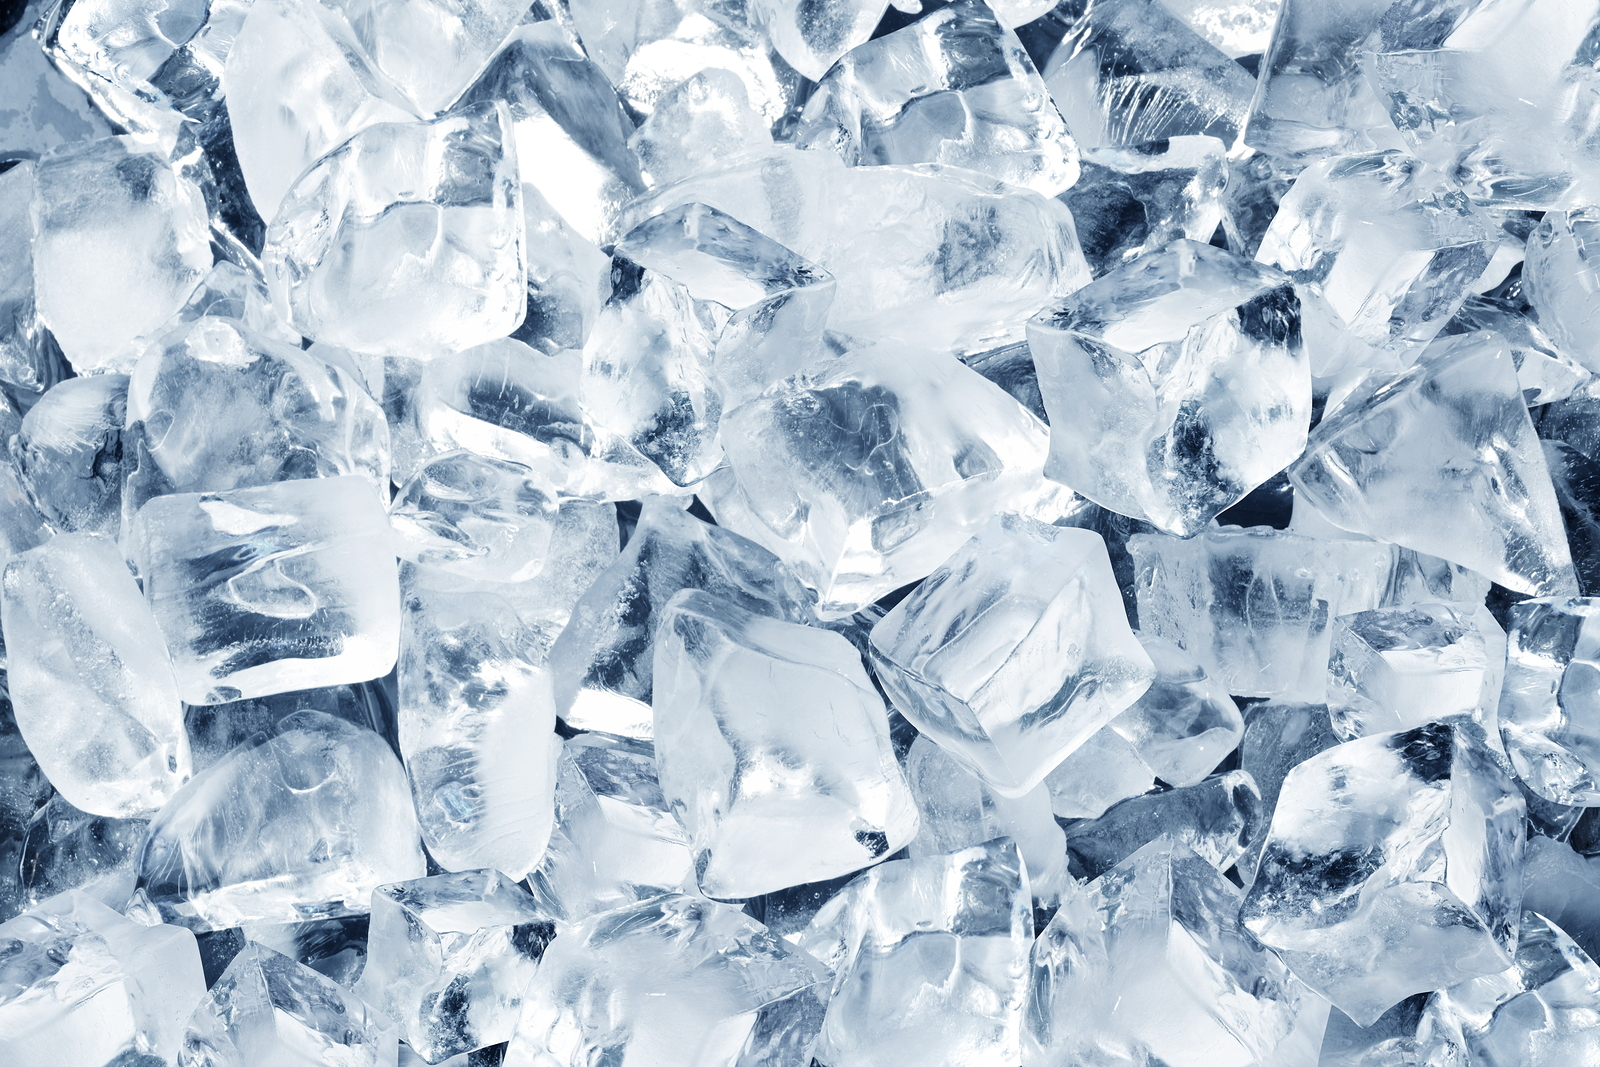 Background in the form of ice cubes